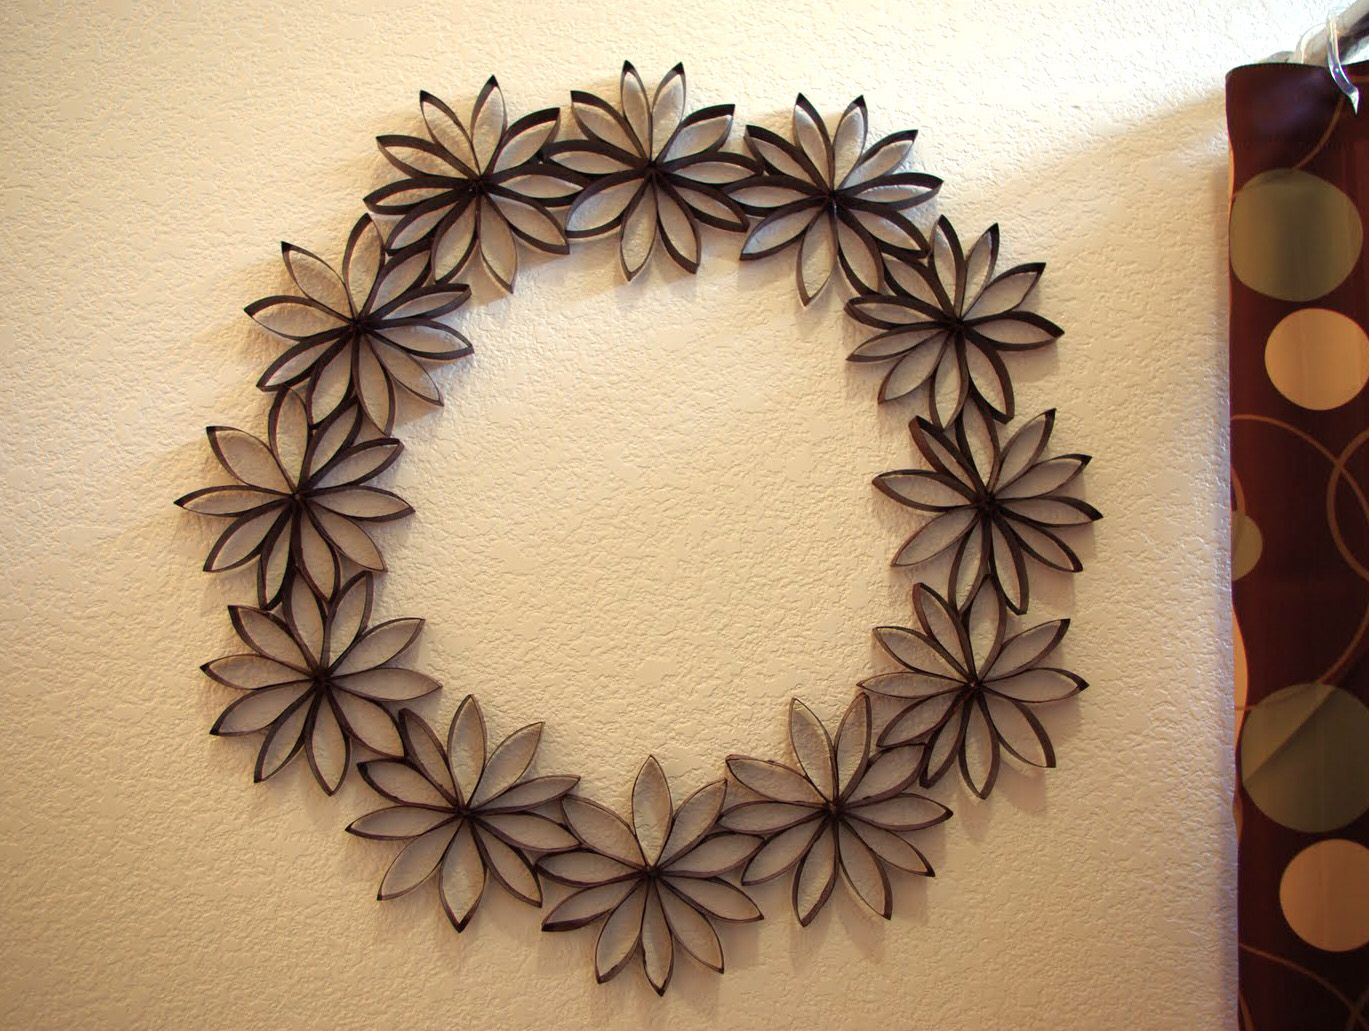 Image from http://www.happinessishomemade.net/wp-content/uploads/2010/06/Toilet-Paper-Flower-Wreath.jpg.